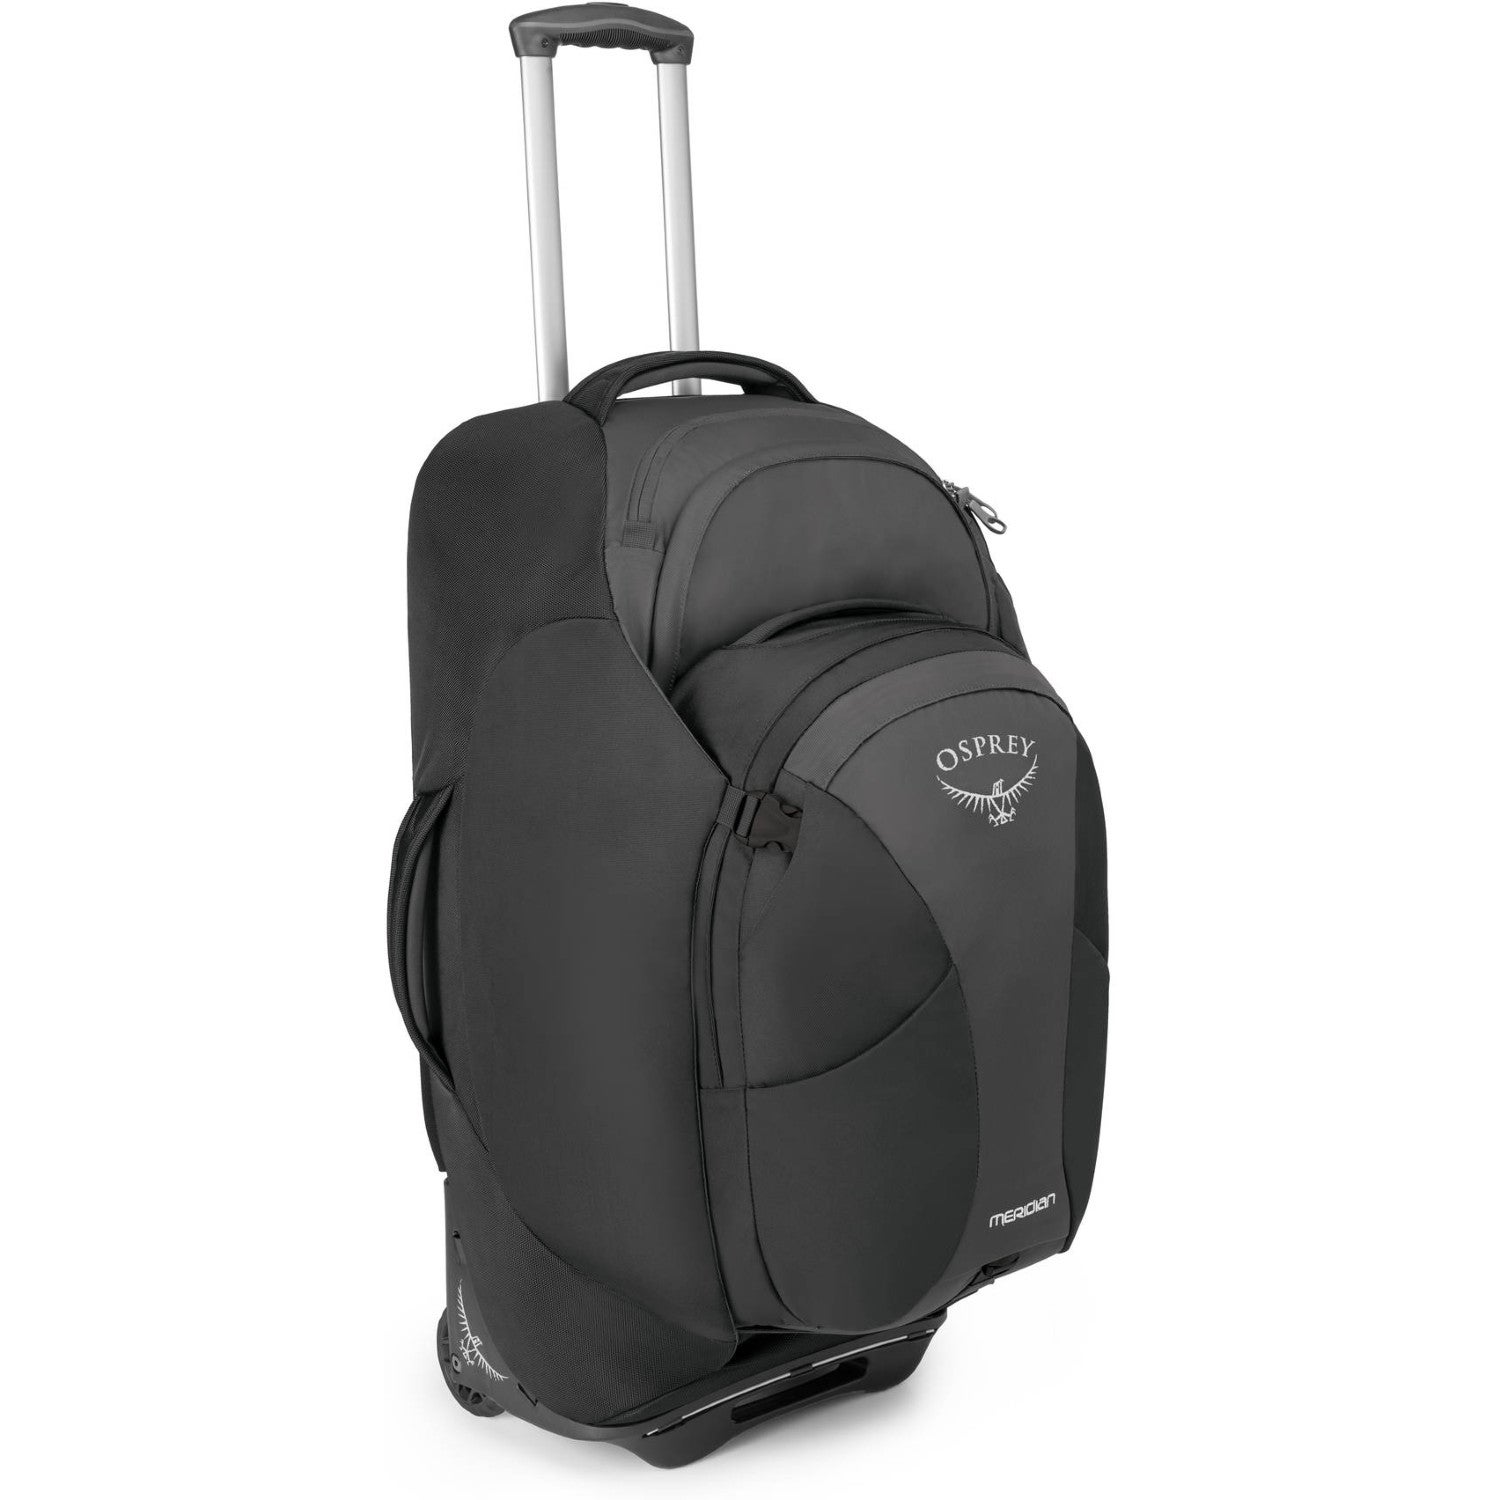 Osprey Meridian 75 Luggage - Metal Grey